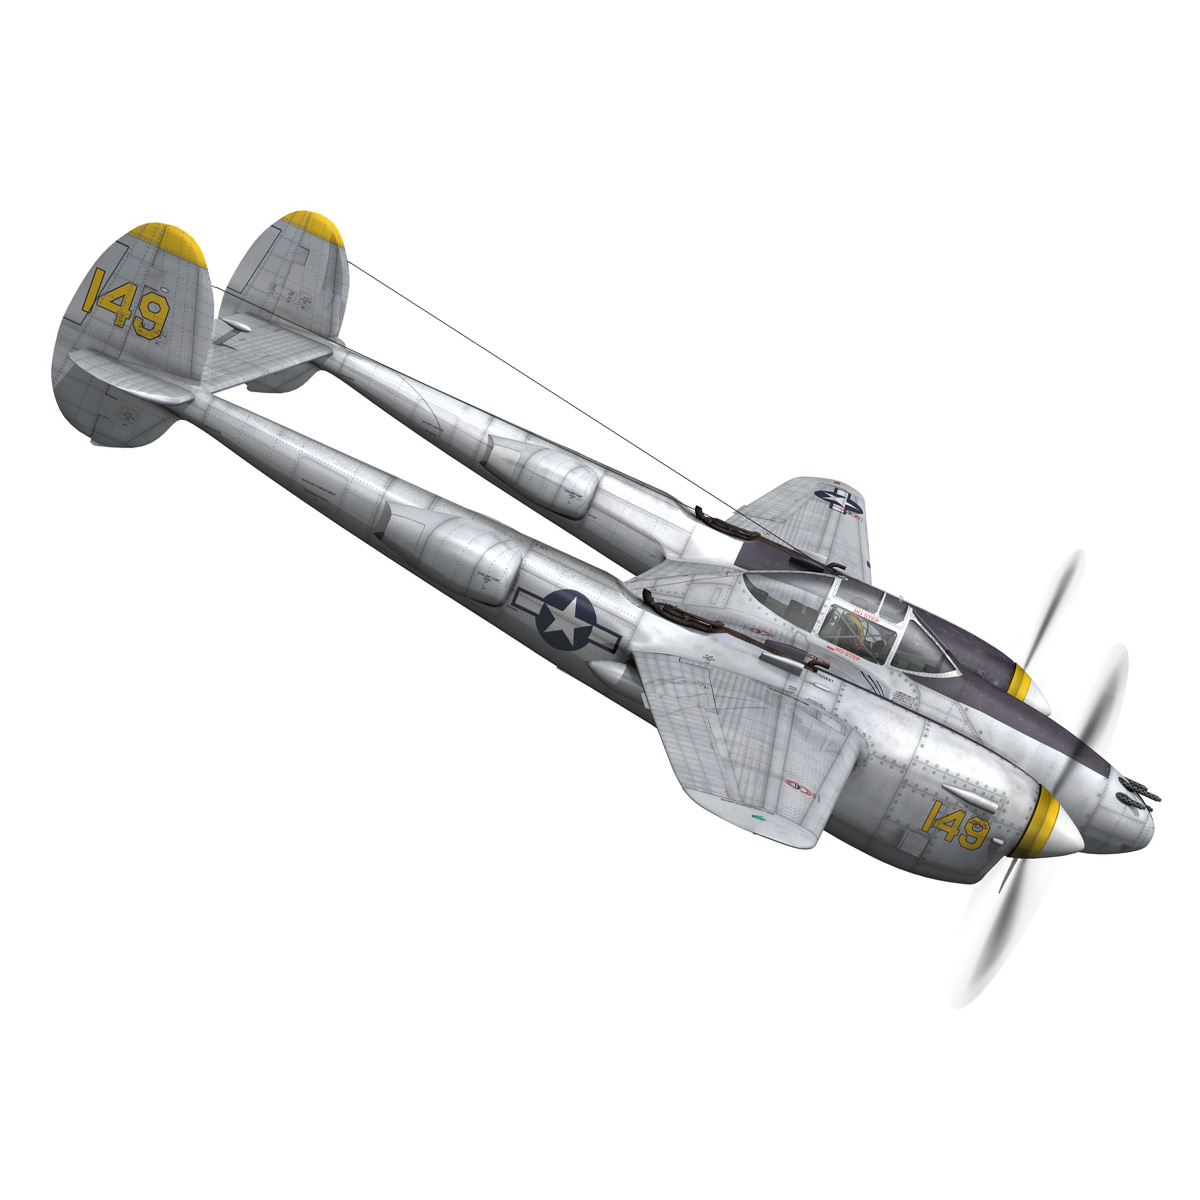 lockheed p-38 lightning – florida cracker 3d model fbx c4d lwo obj 279420